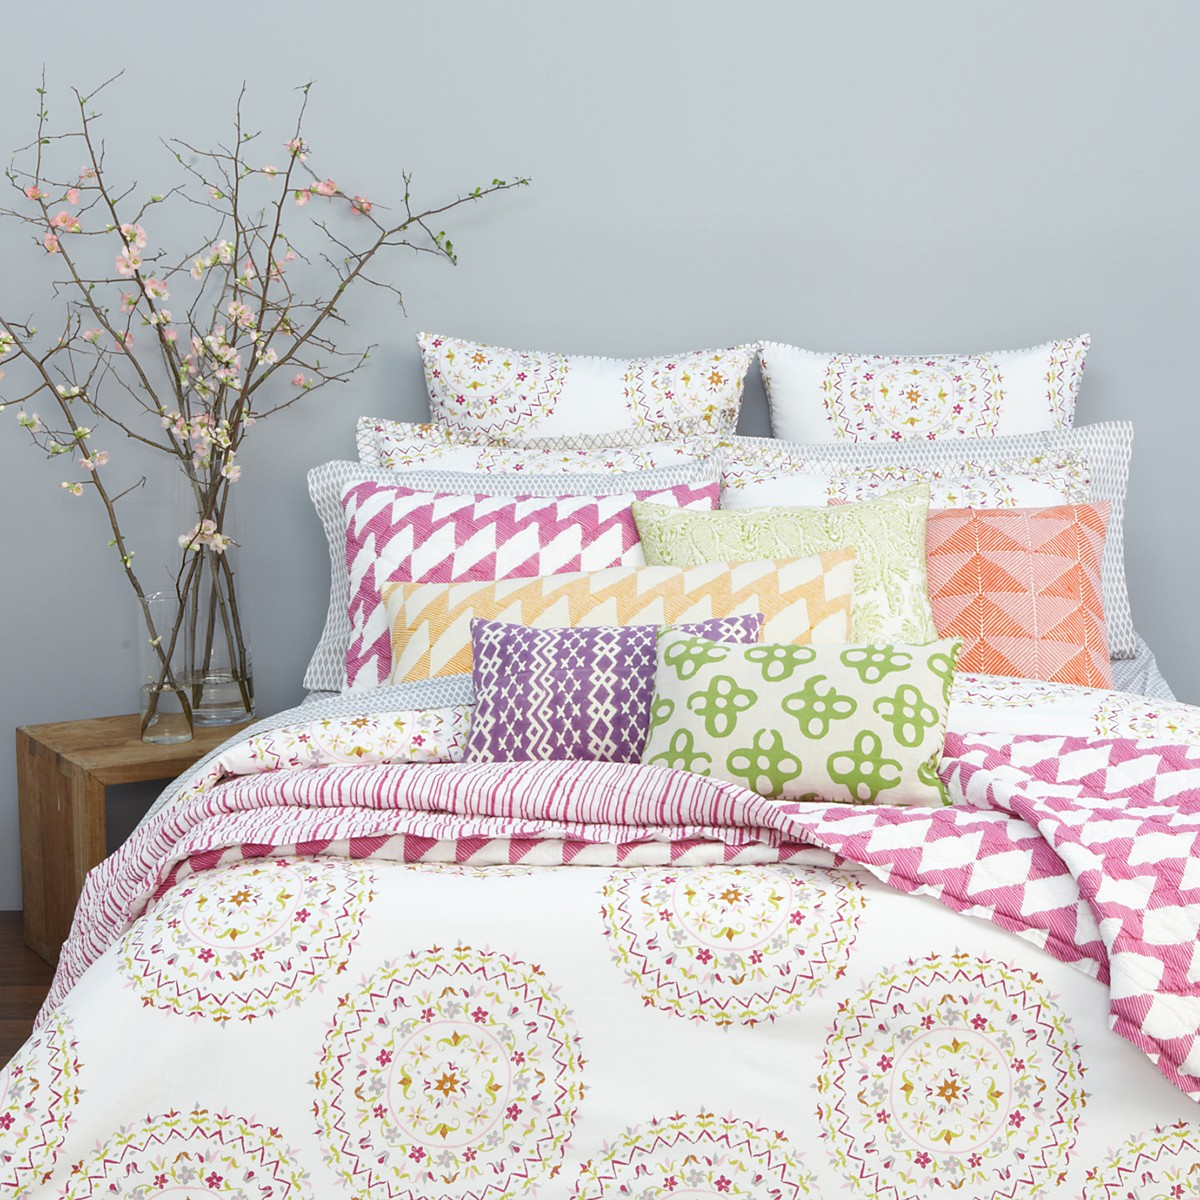 John Robshaw Pillows | John Robshaw Sale Bedding | John Robshaw Fabric By The Yard